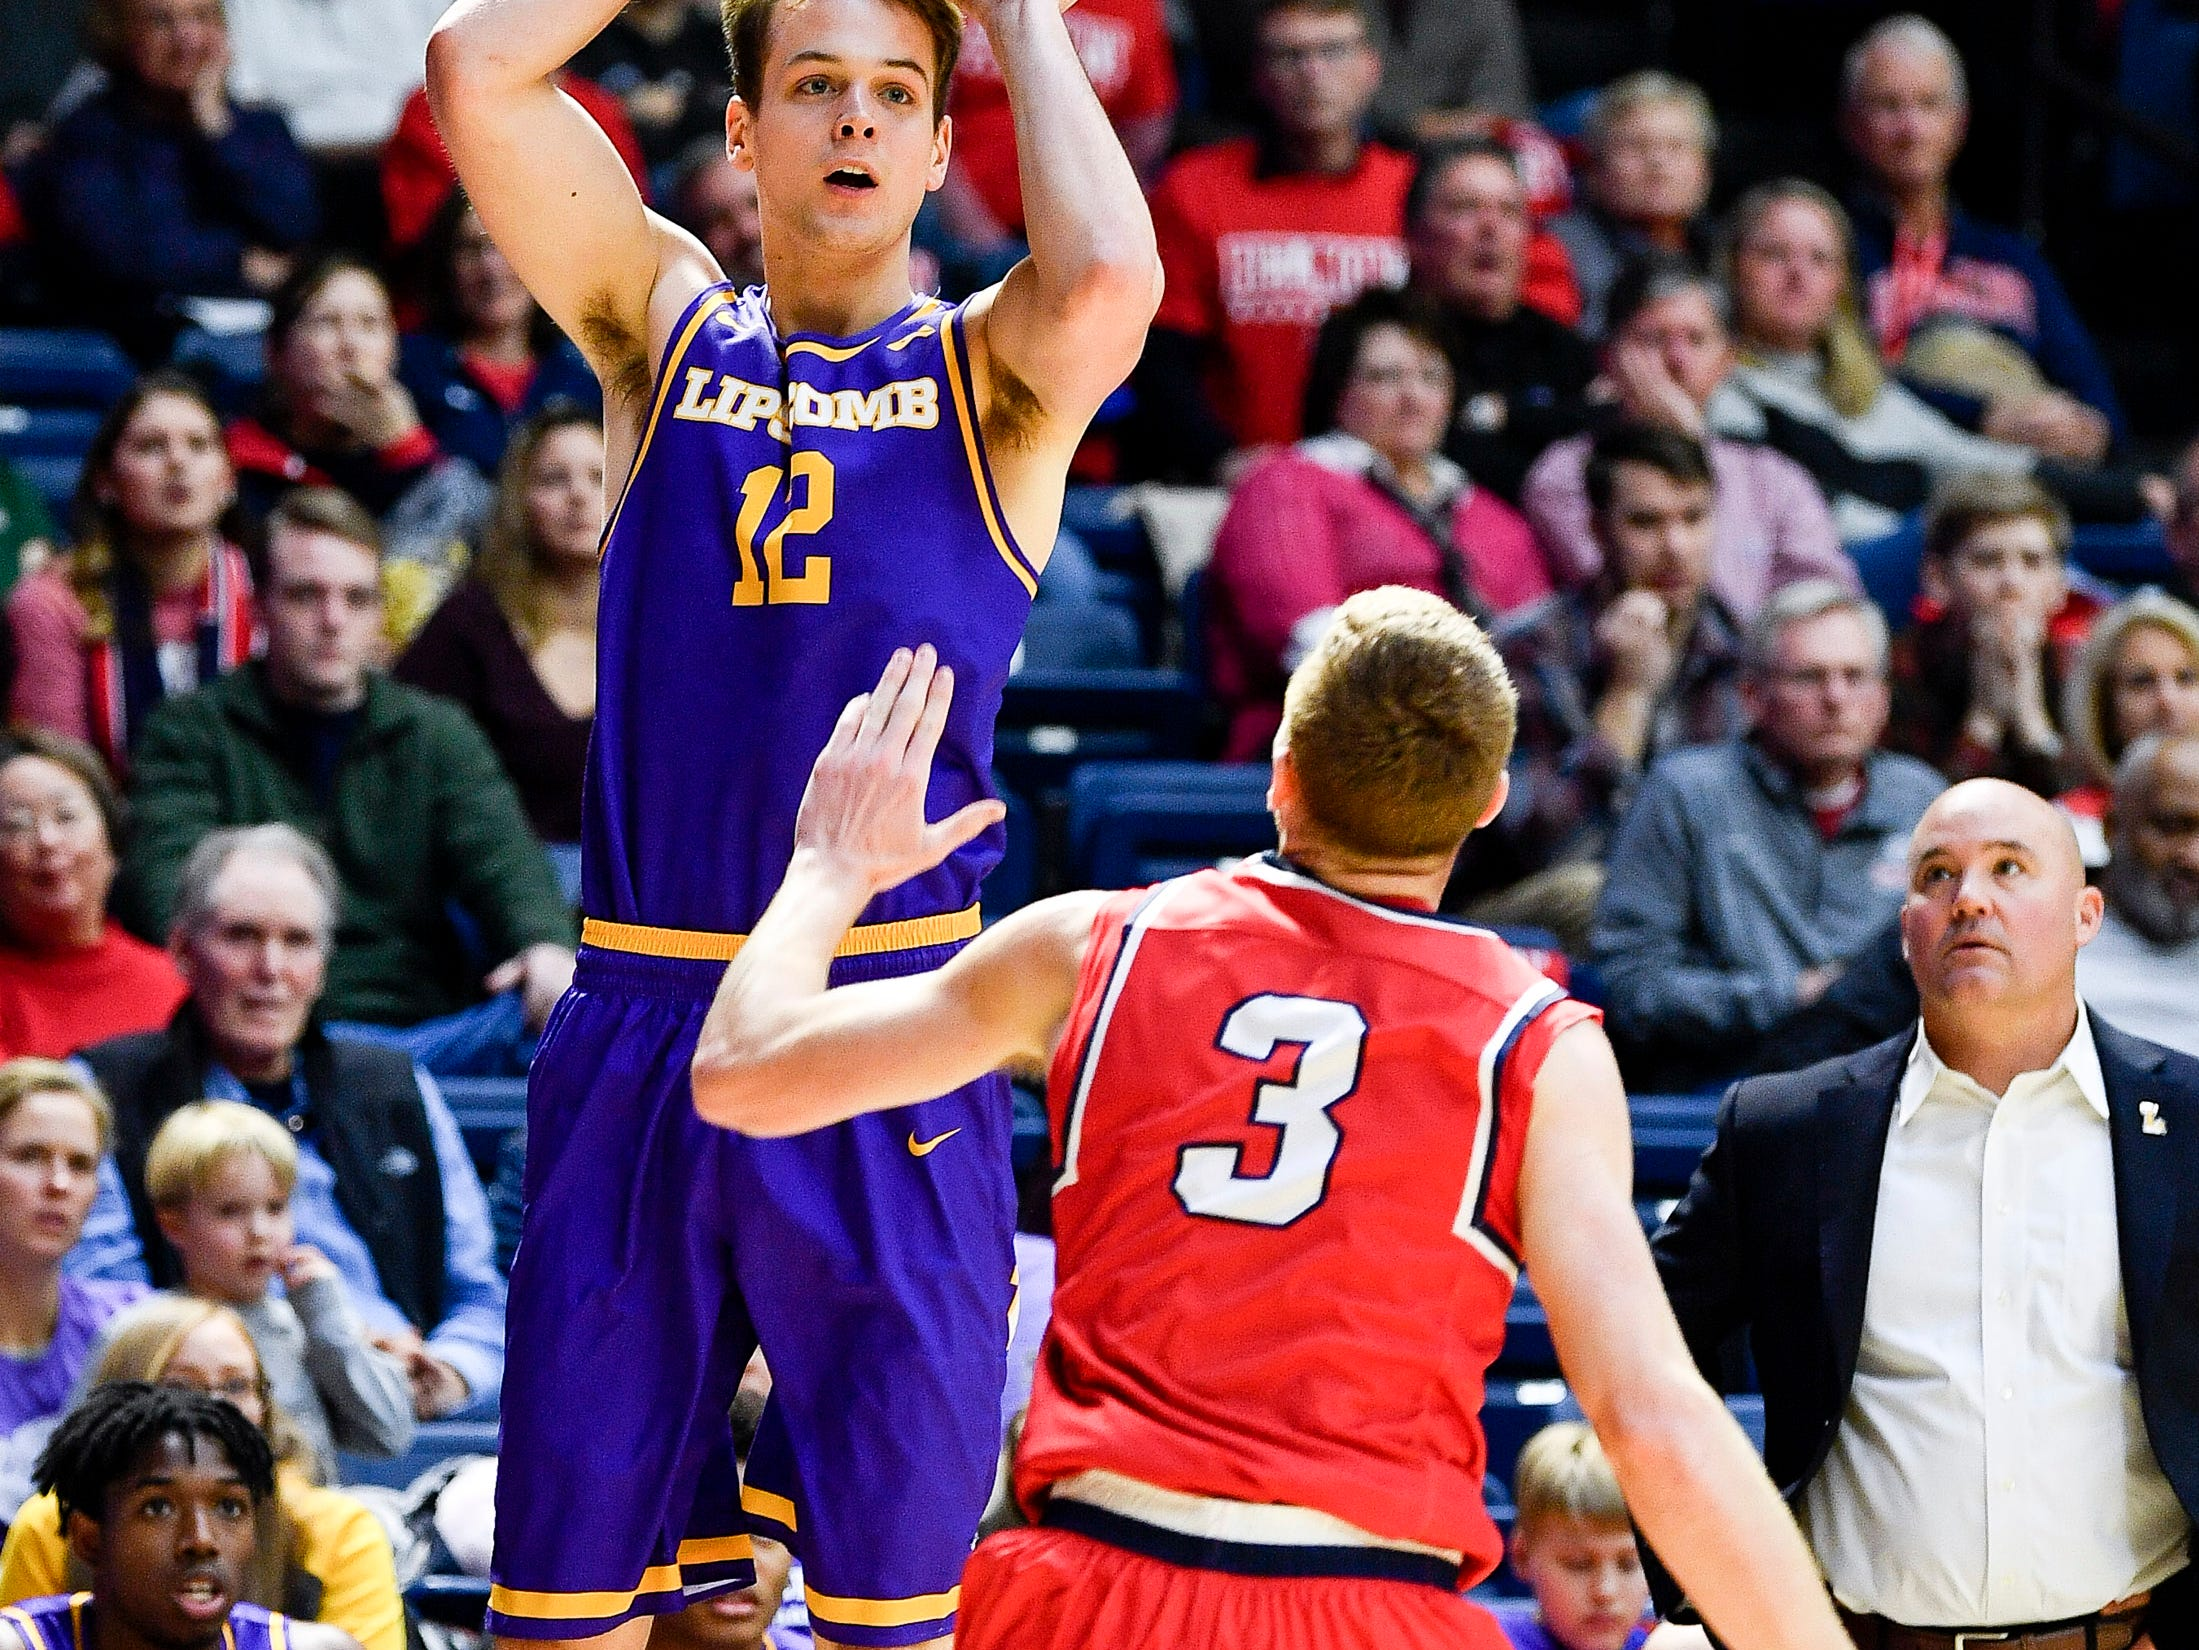 Lipscomb forward Matt Rose (12) shoots over Belmont guard/forward Dylan Windler (3) during the second half at the Curb Event Center in Nashville, Tenn., Tuesday, Dec. 4, 2018.